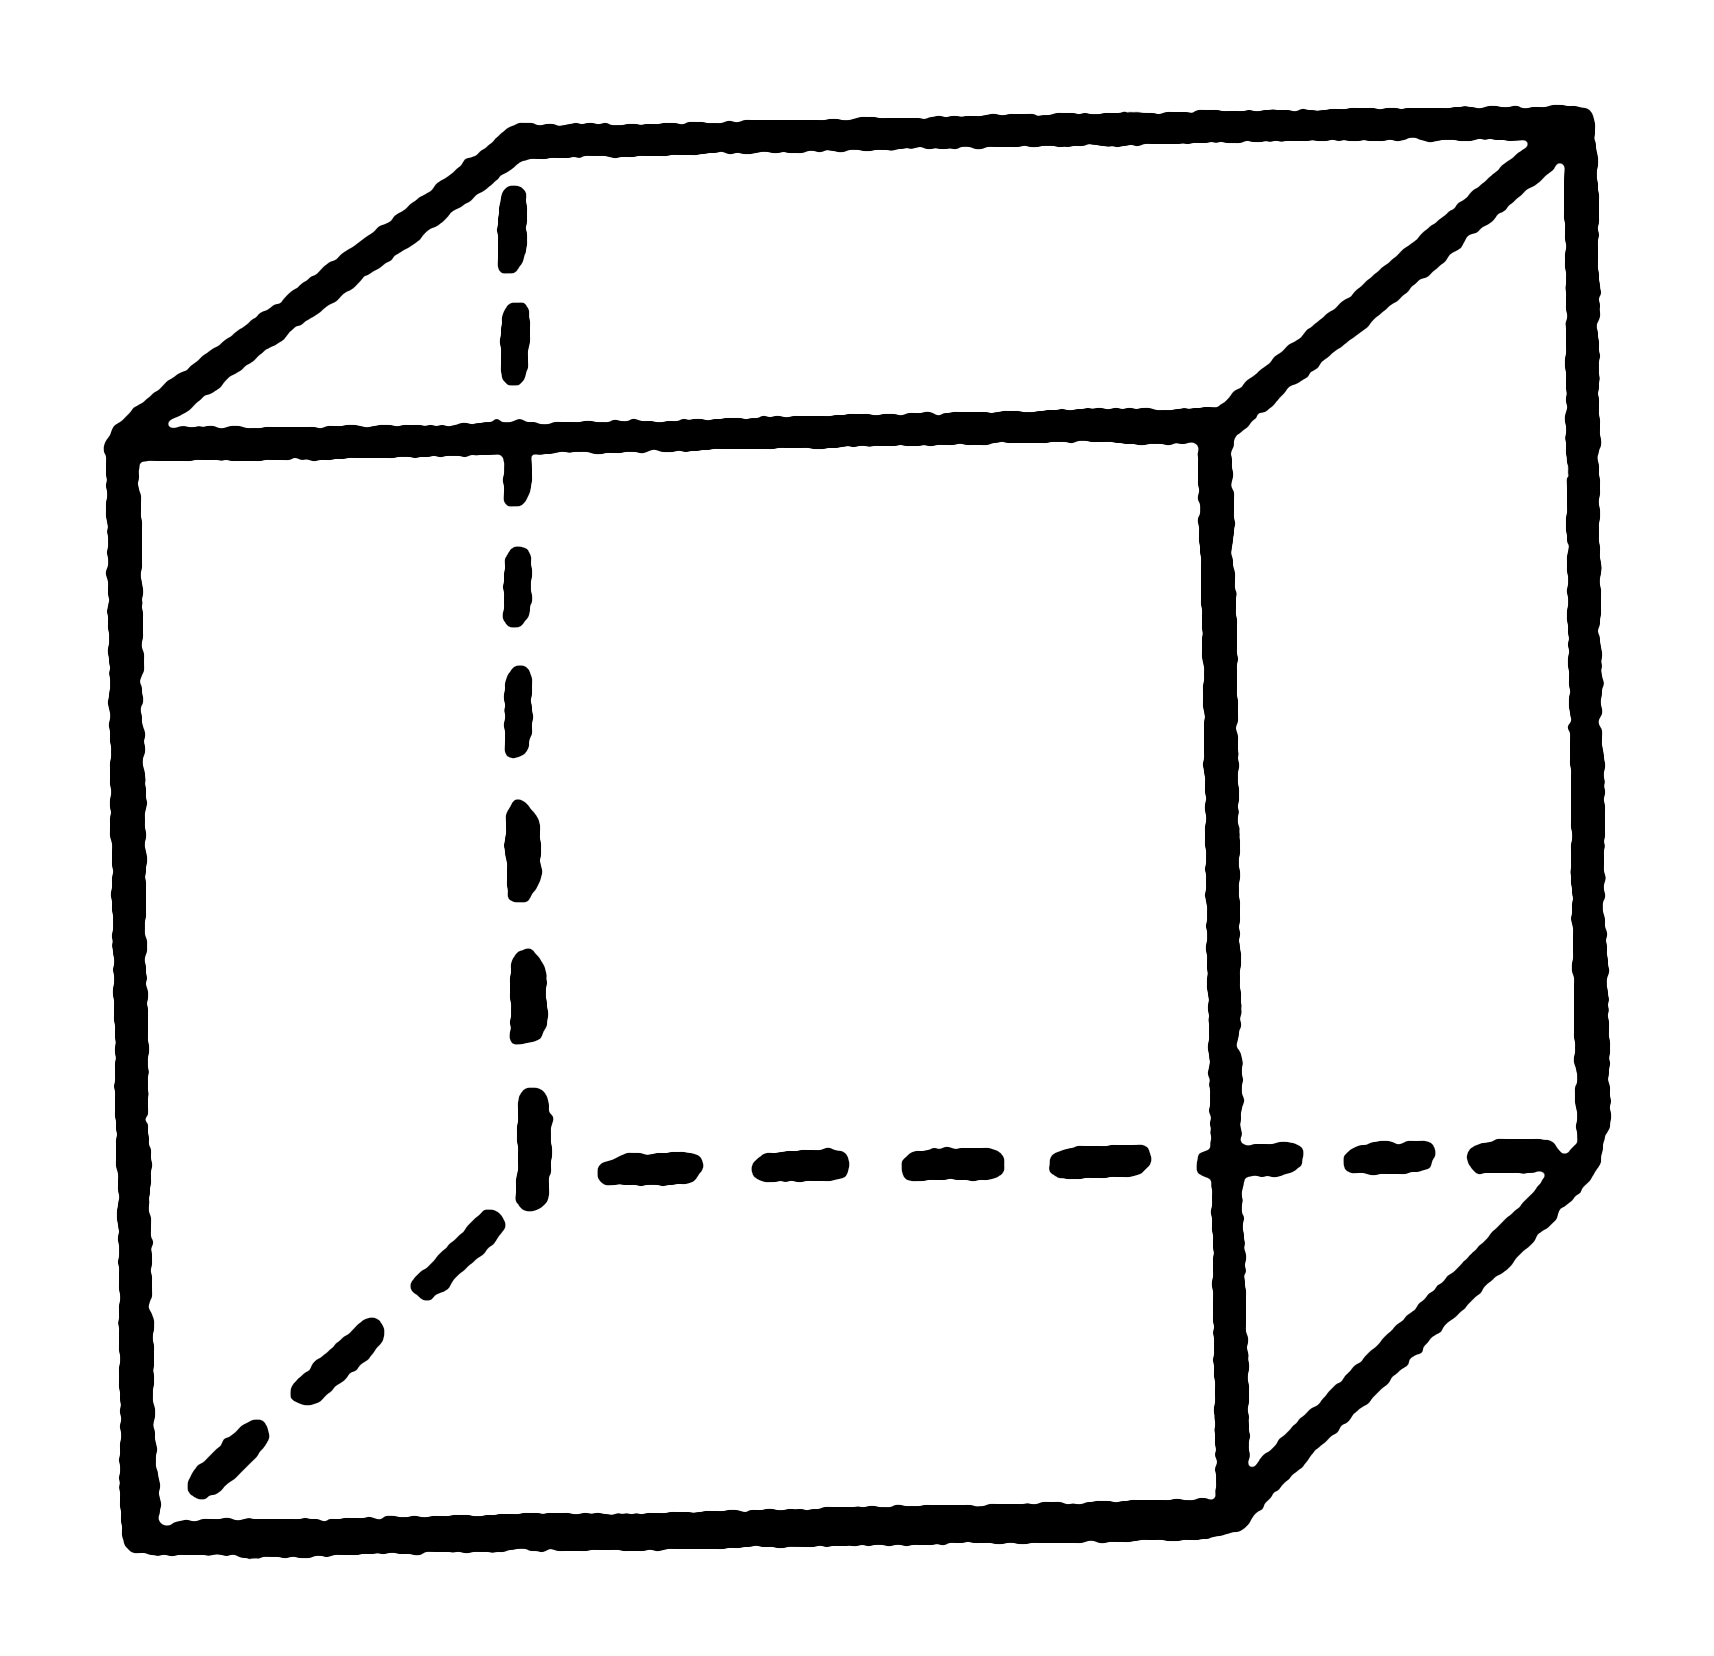 How To Find The Length Of An Edge Of A Cube